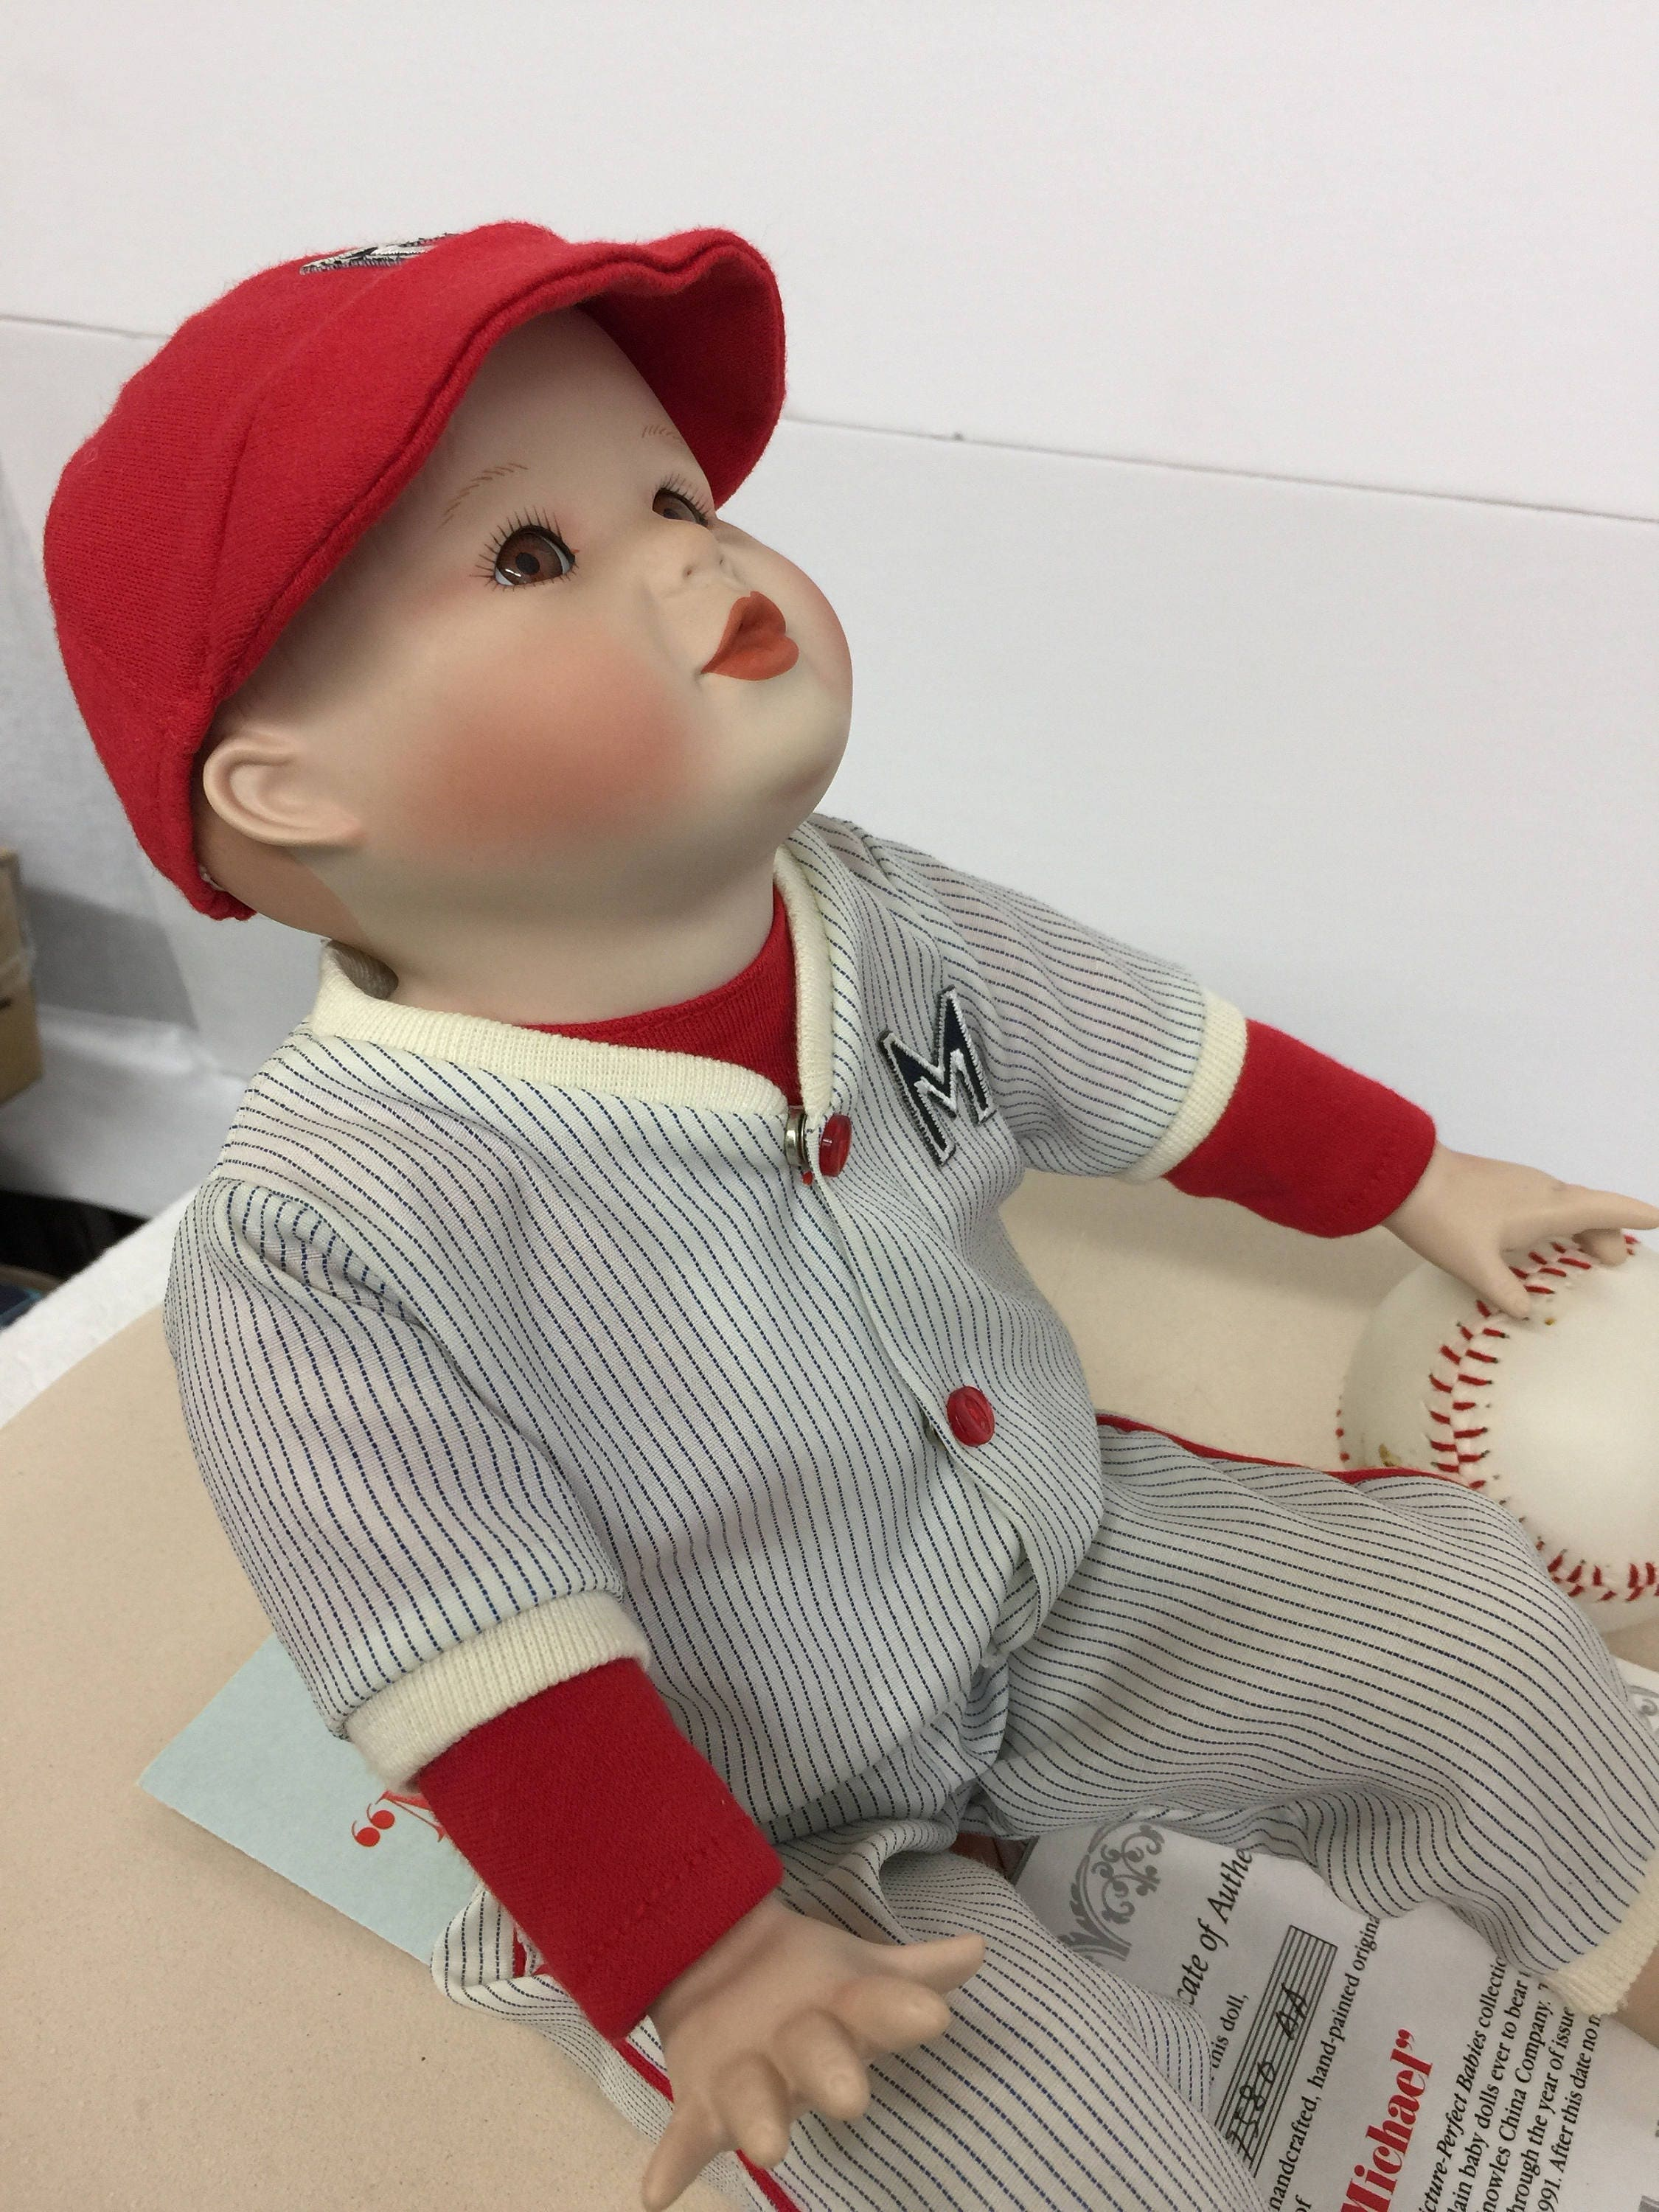 Ashton Drake Yolanda Bello Michael Porcelain Baseball Boy Doll Etsy